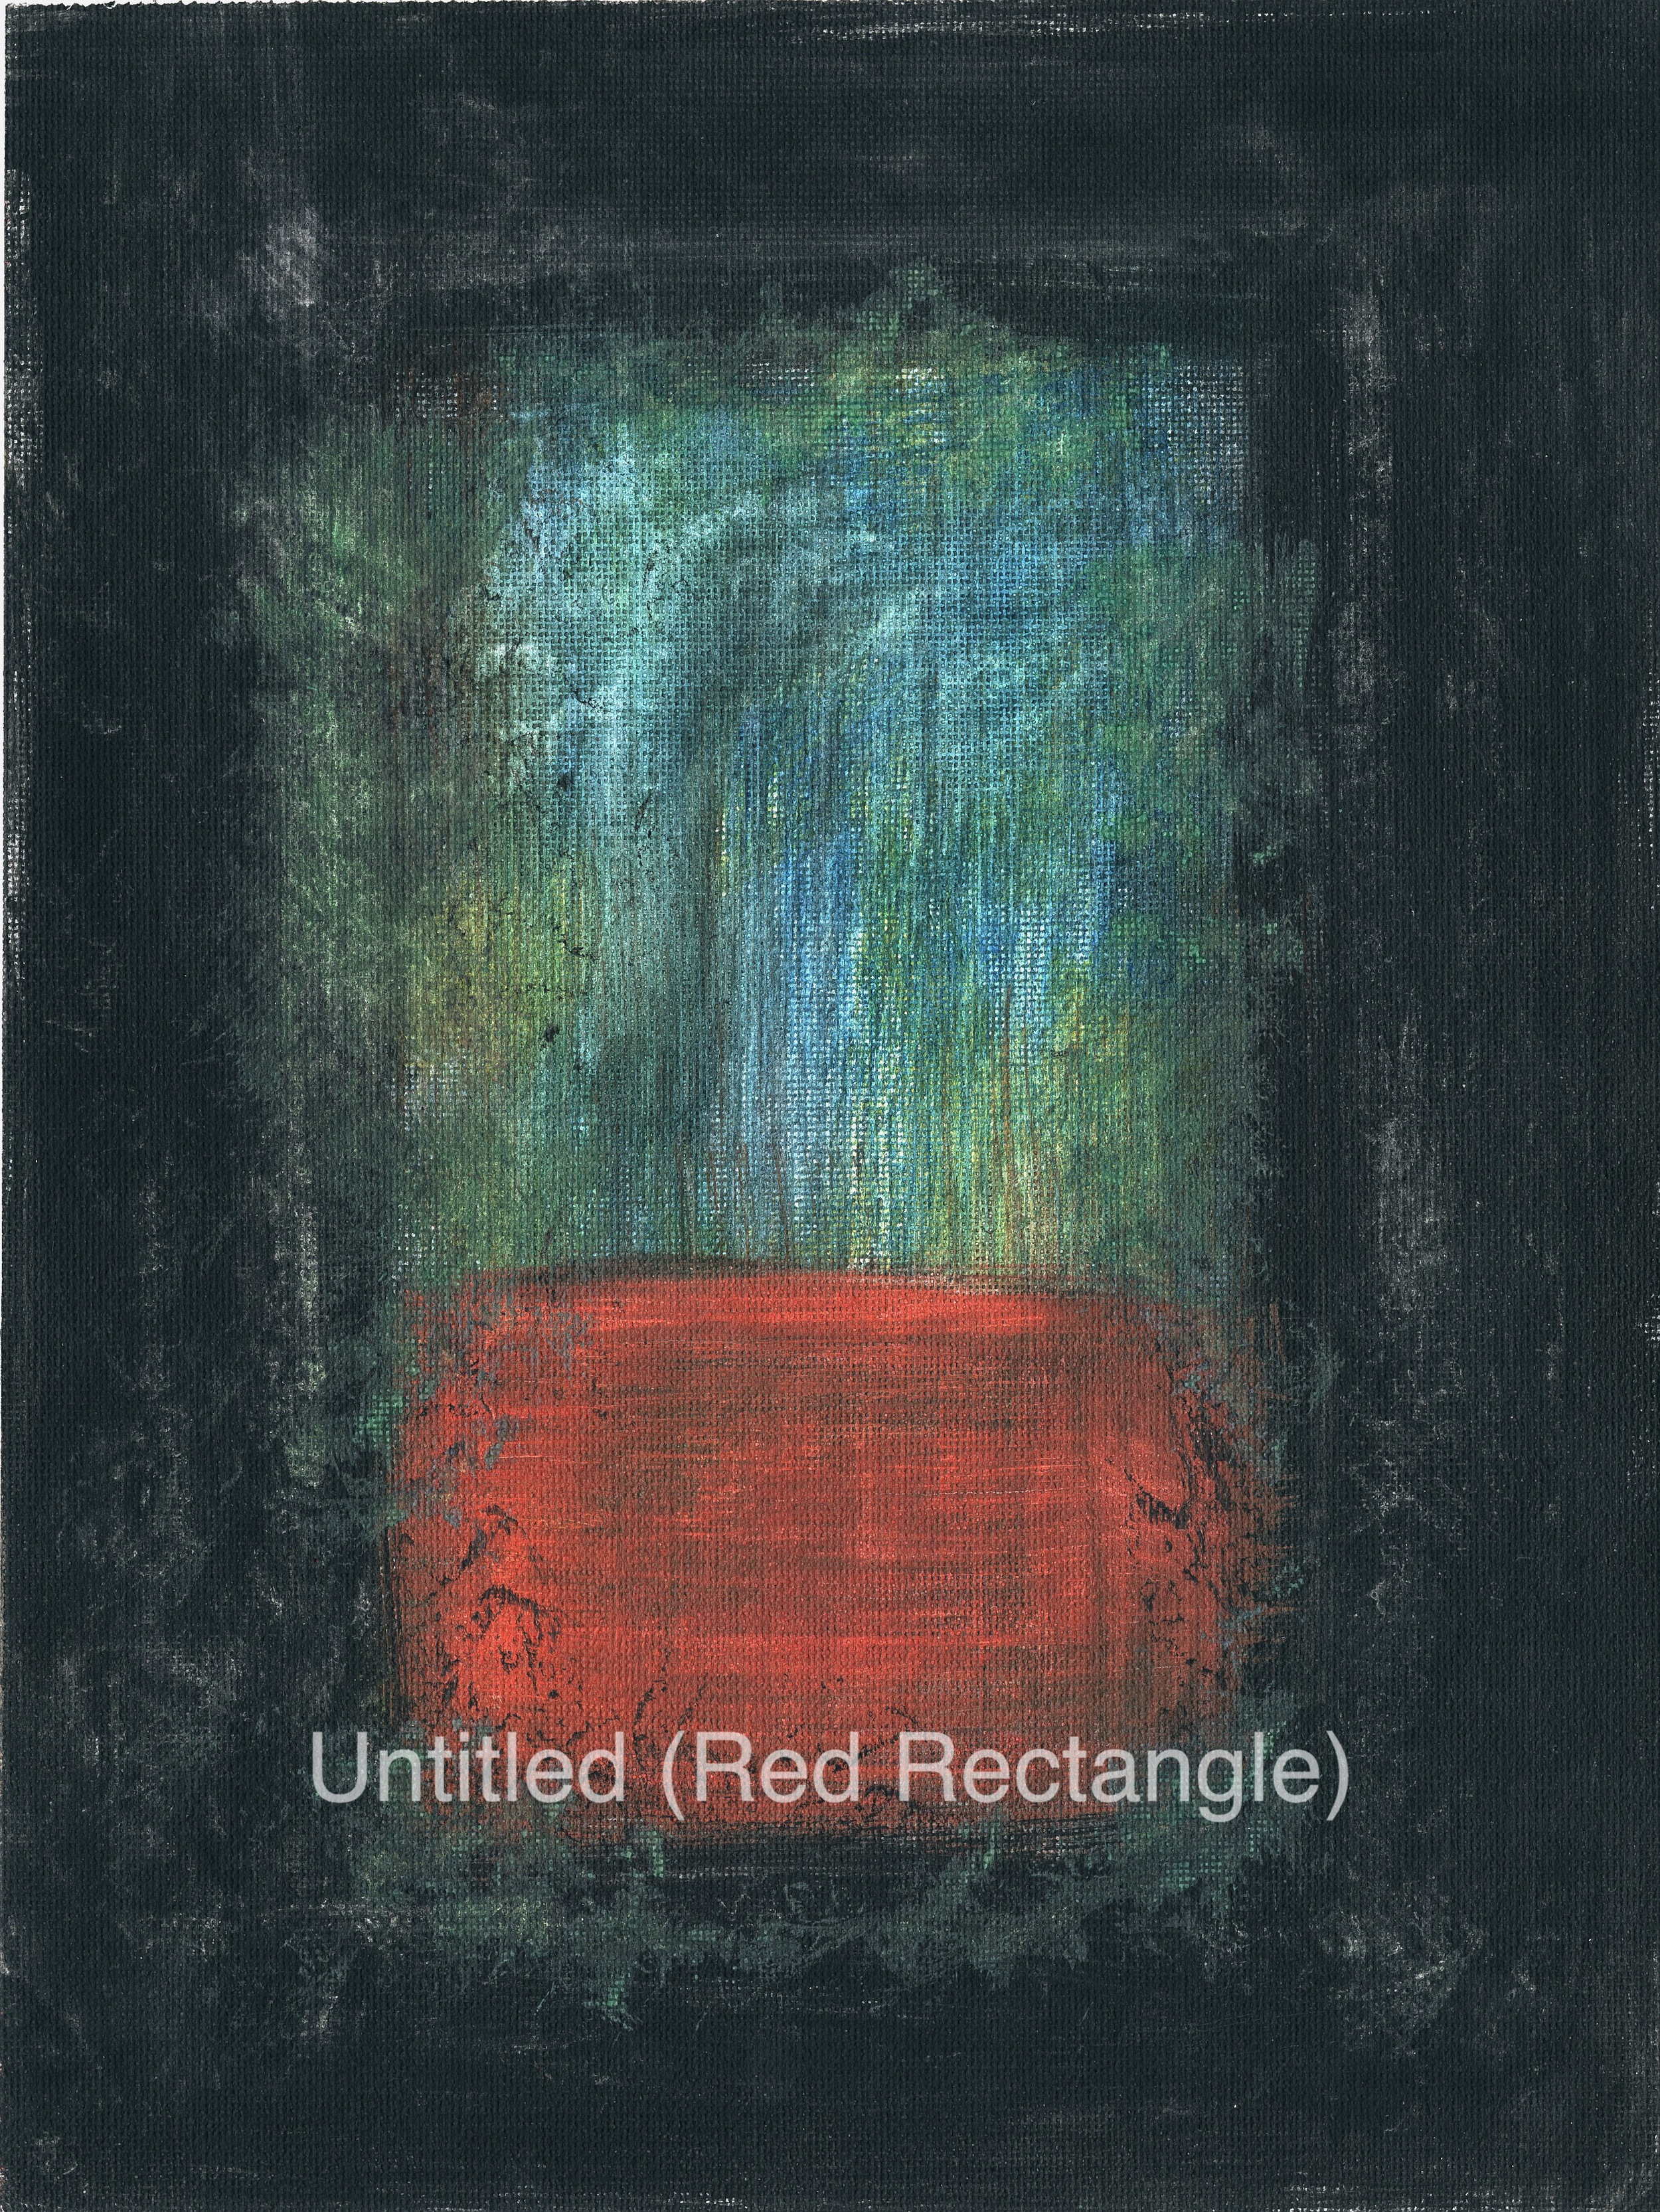 Untitled (Red Rectangle).jpg